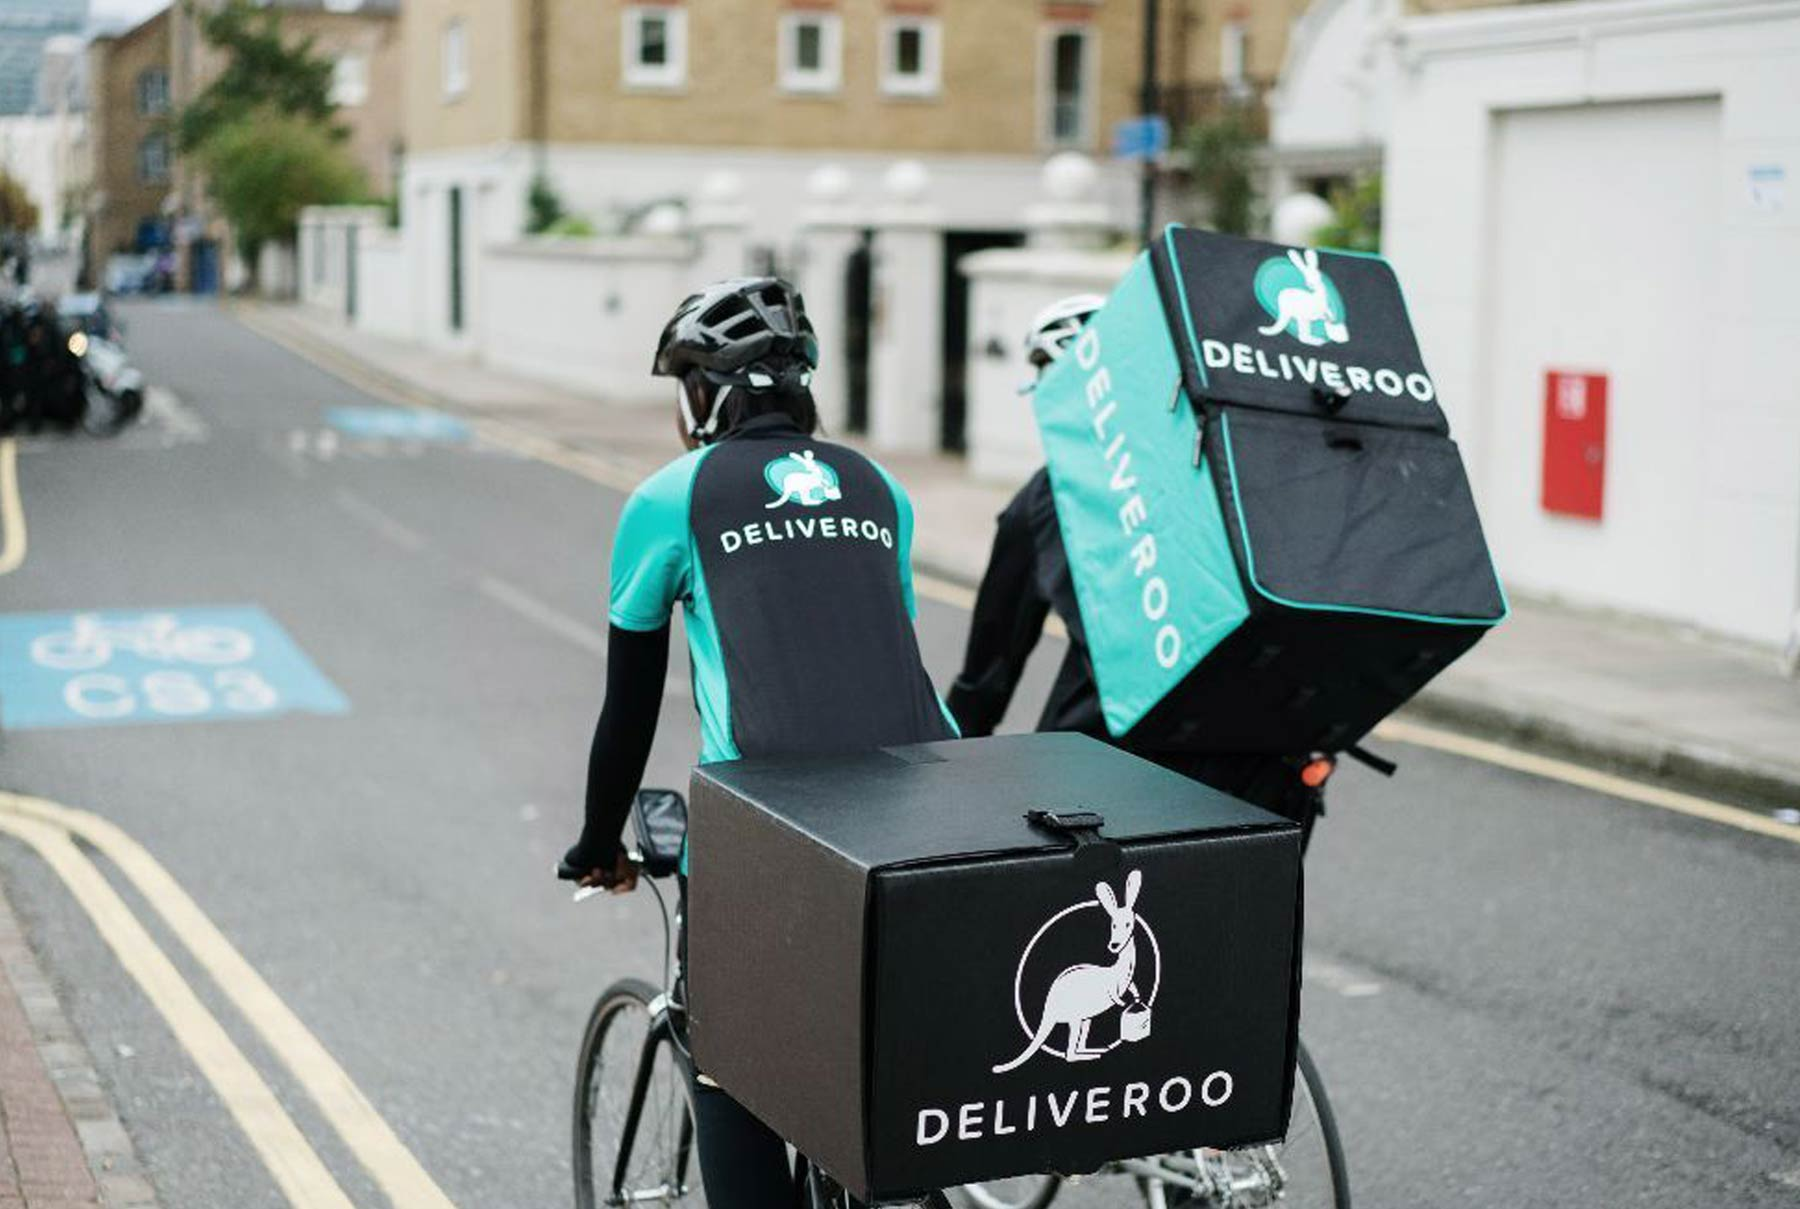 Deliveroo - a global concept that has received major funding to set it up for the future